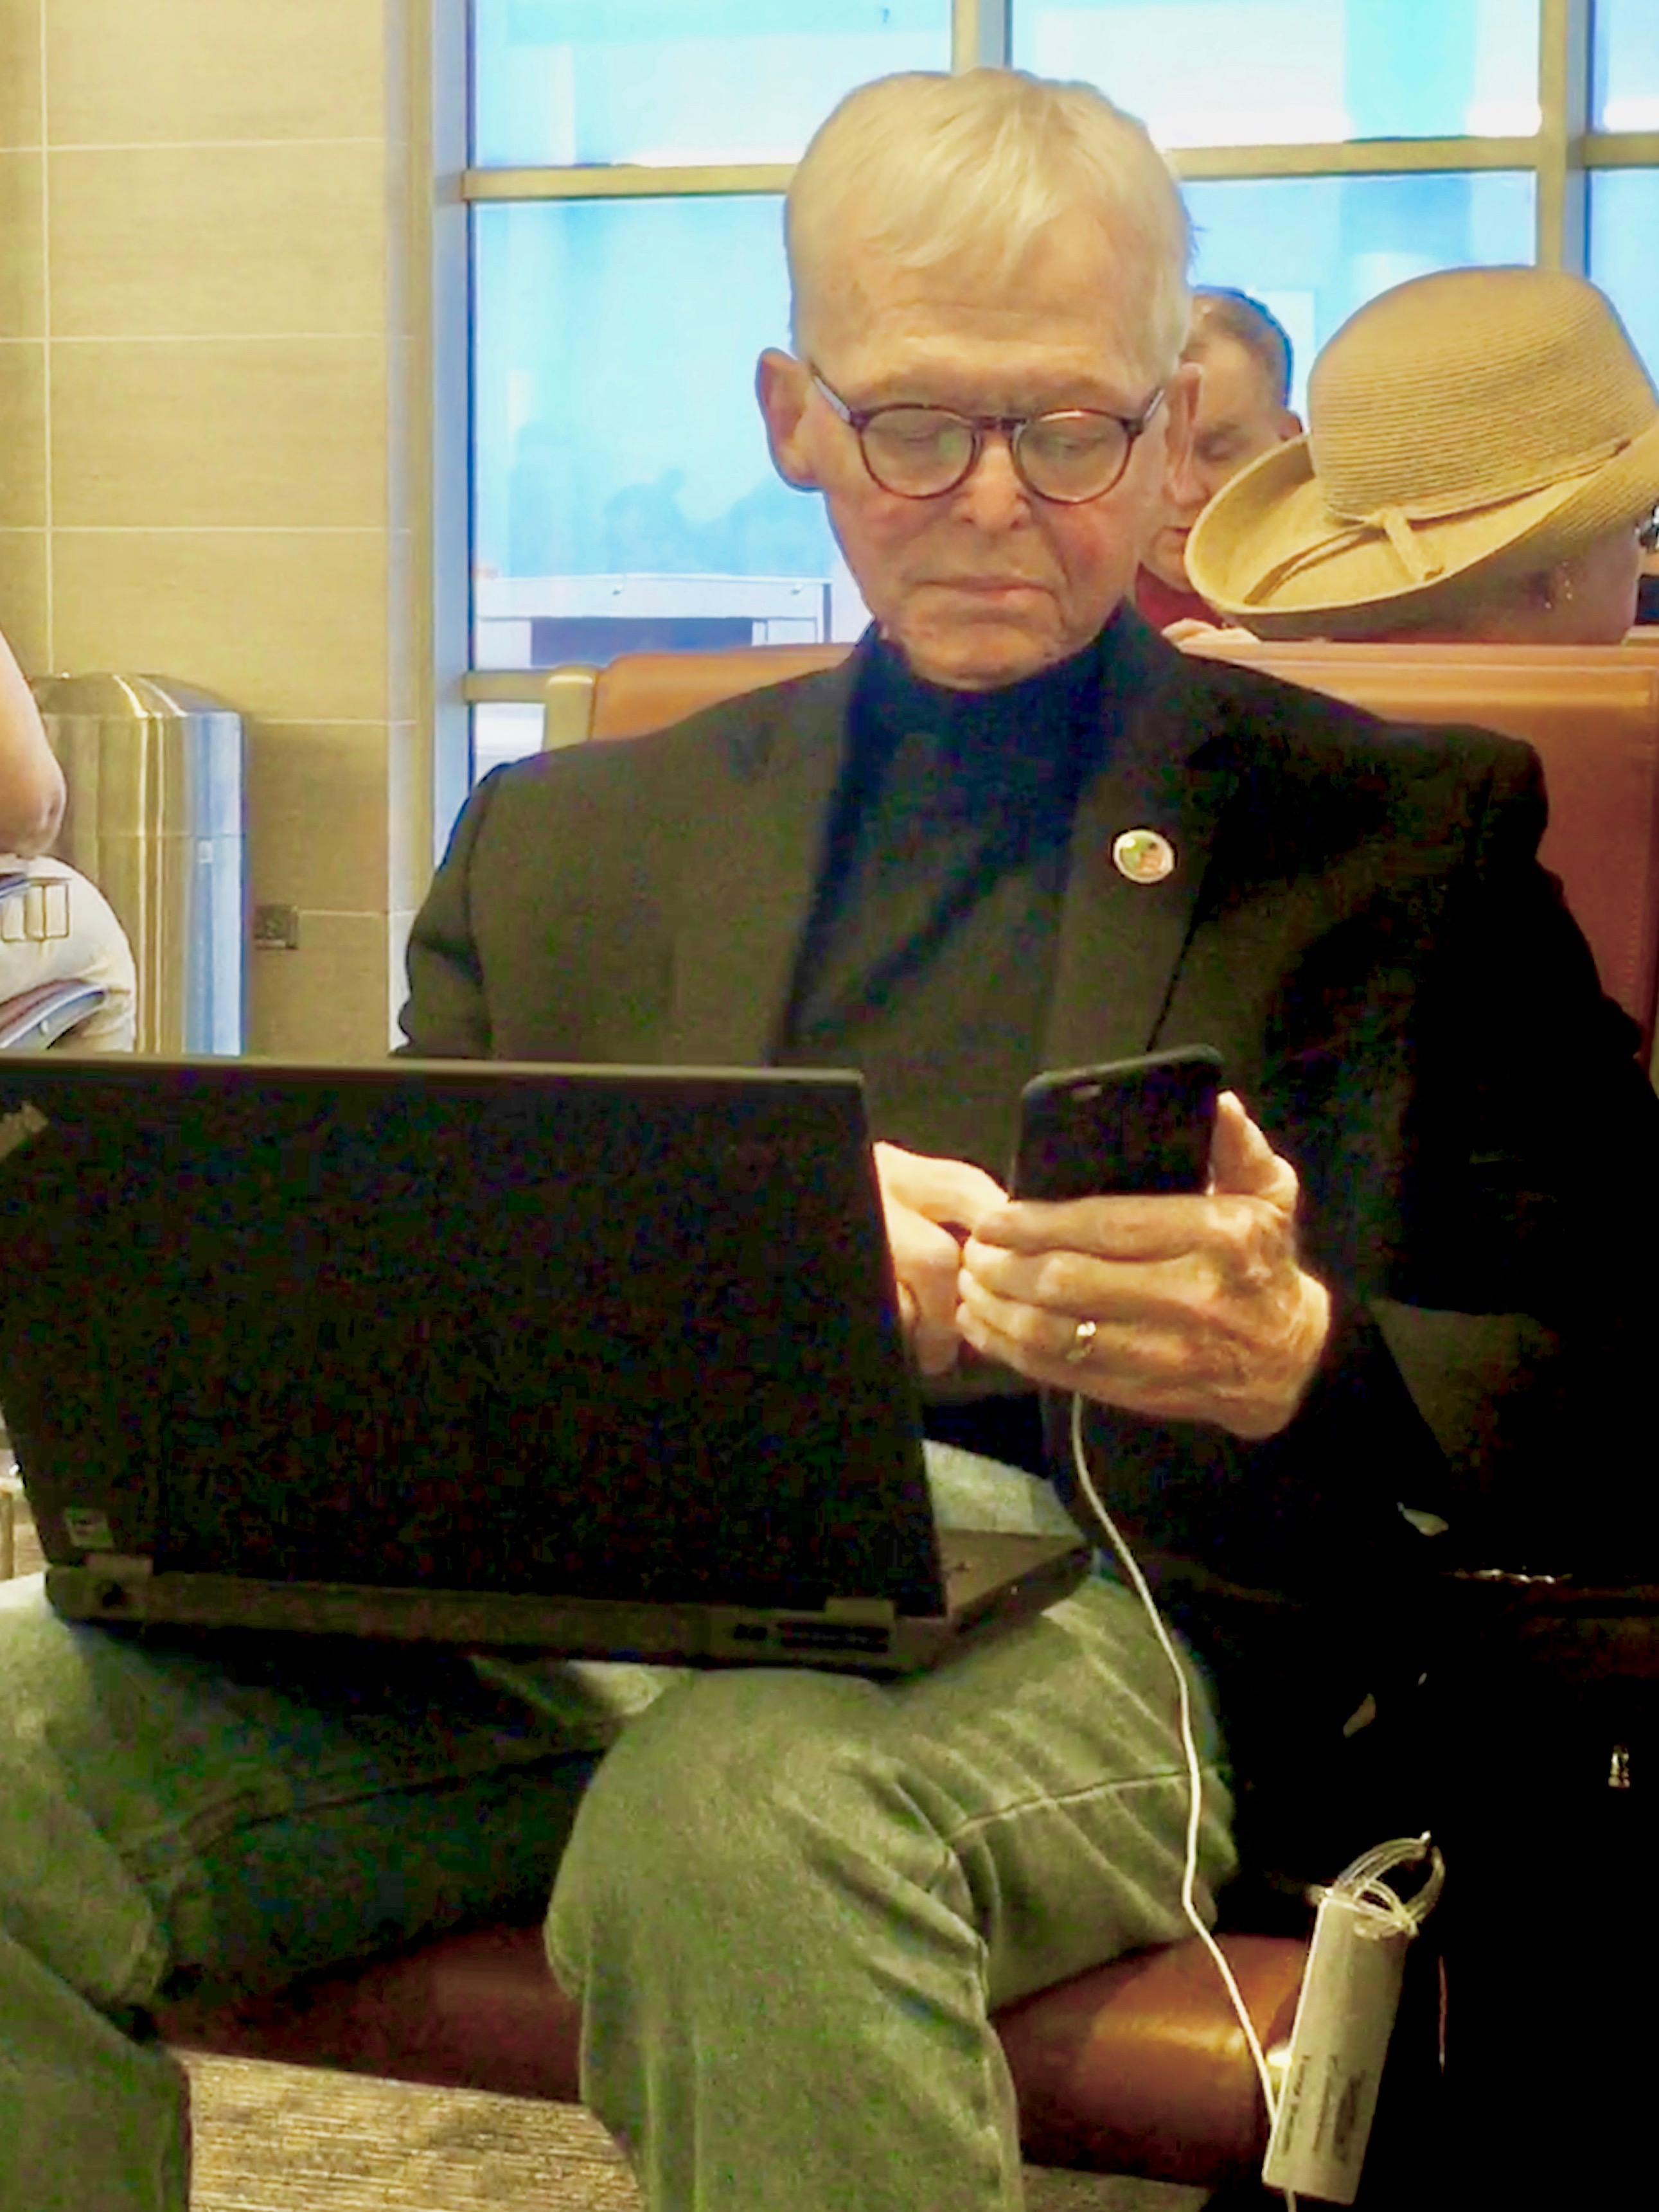 Tony Swan, looking like he enjoyed the high-tech tools of being an auto journalist, was spotted in the San Antonio airport in April of 2017.